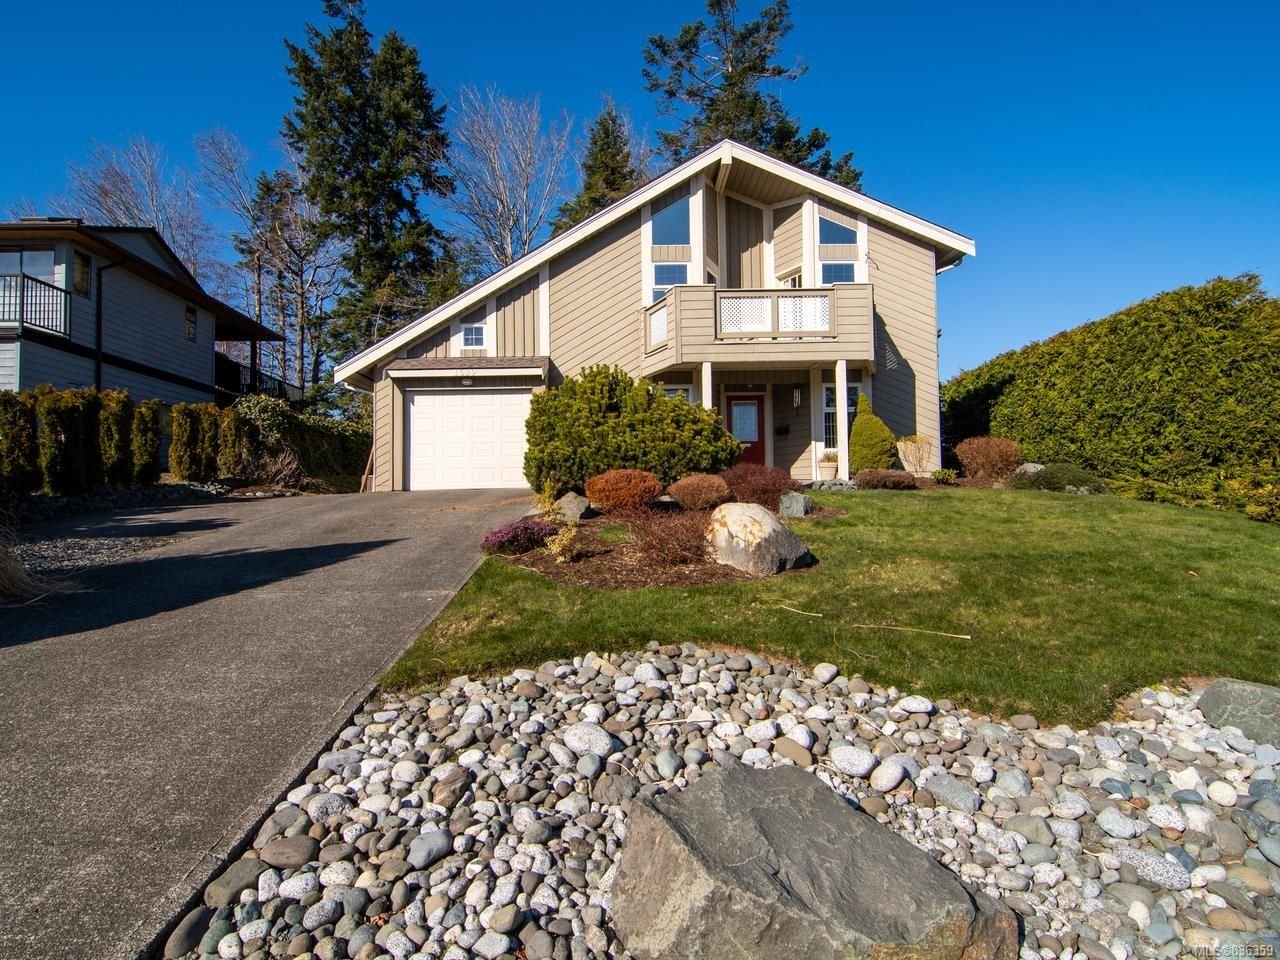 Main Photo: 1629 PASSAGE VIEW DRIVE in CAMPBELL RIVER: CR Willow Point House for sale (Campbell River)  : MLS®# 836359